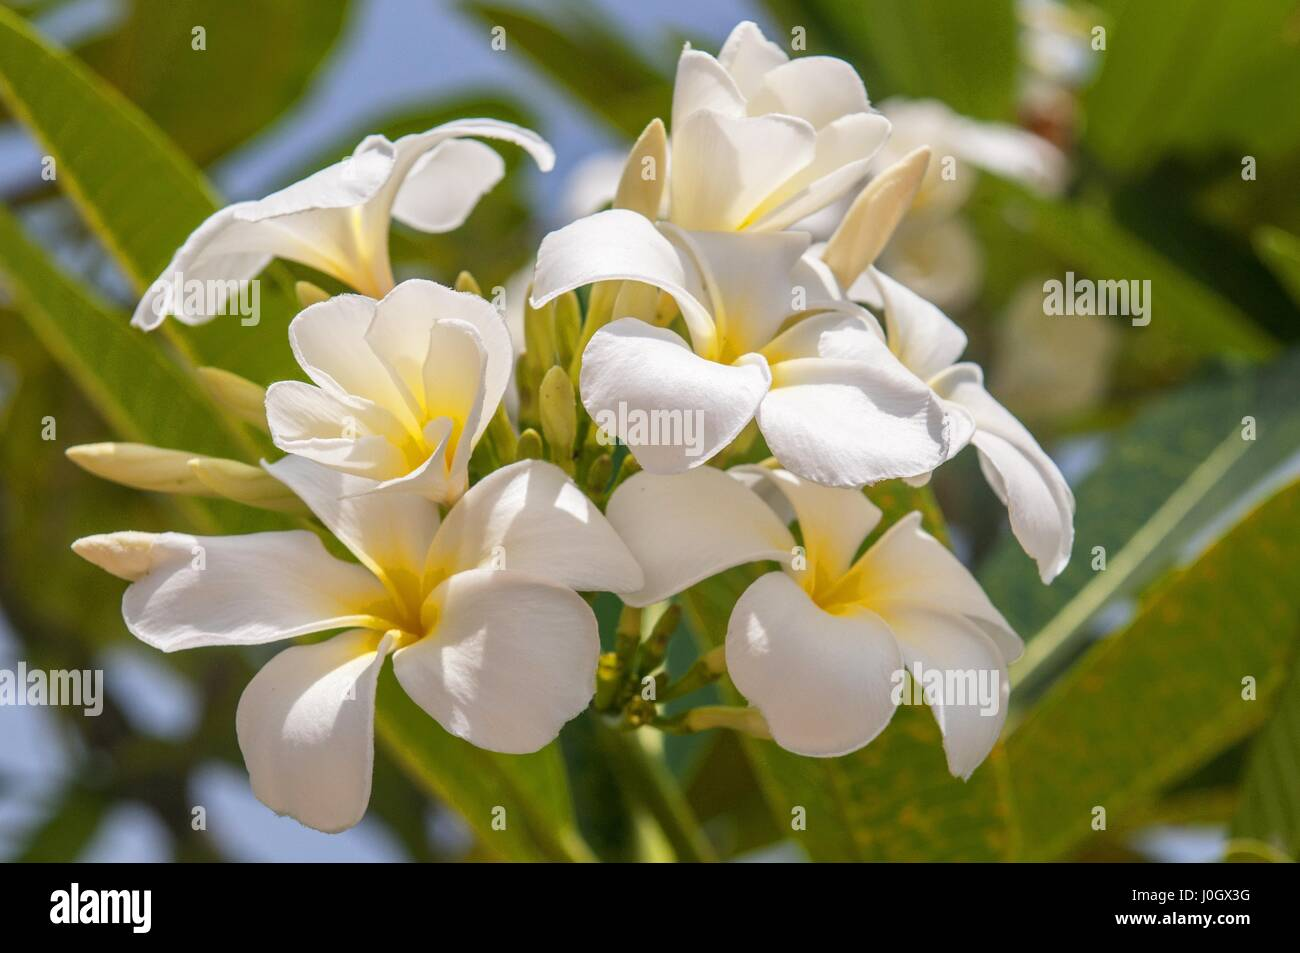 White flowers on a frangipani tree white plumeria an ornamental white flowers on a frangipani tree white plumeria an ornamental tropical plant thailand mightylinksfo